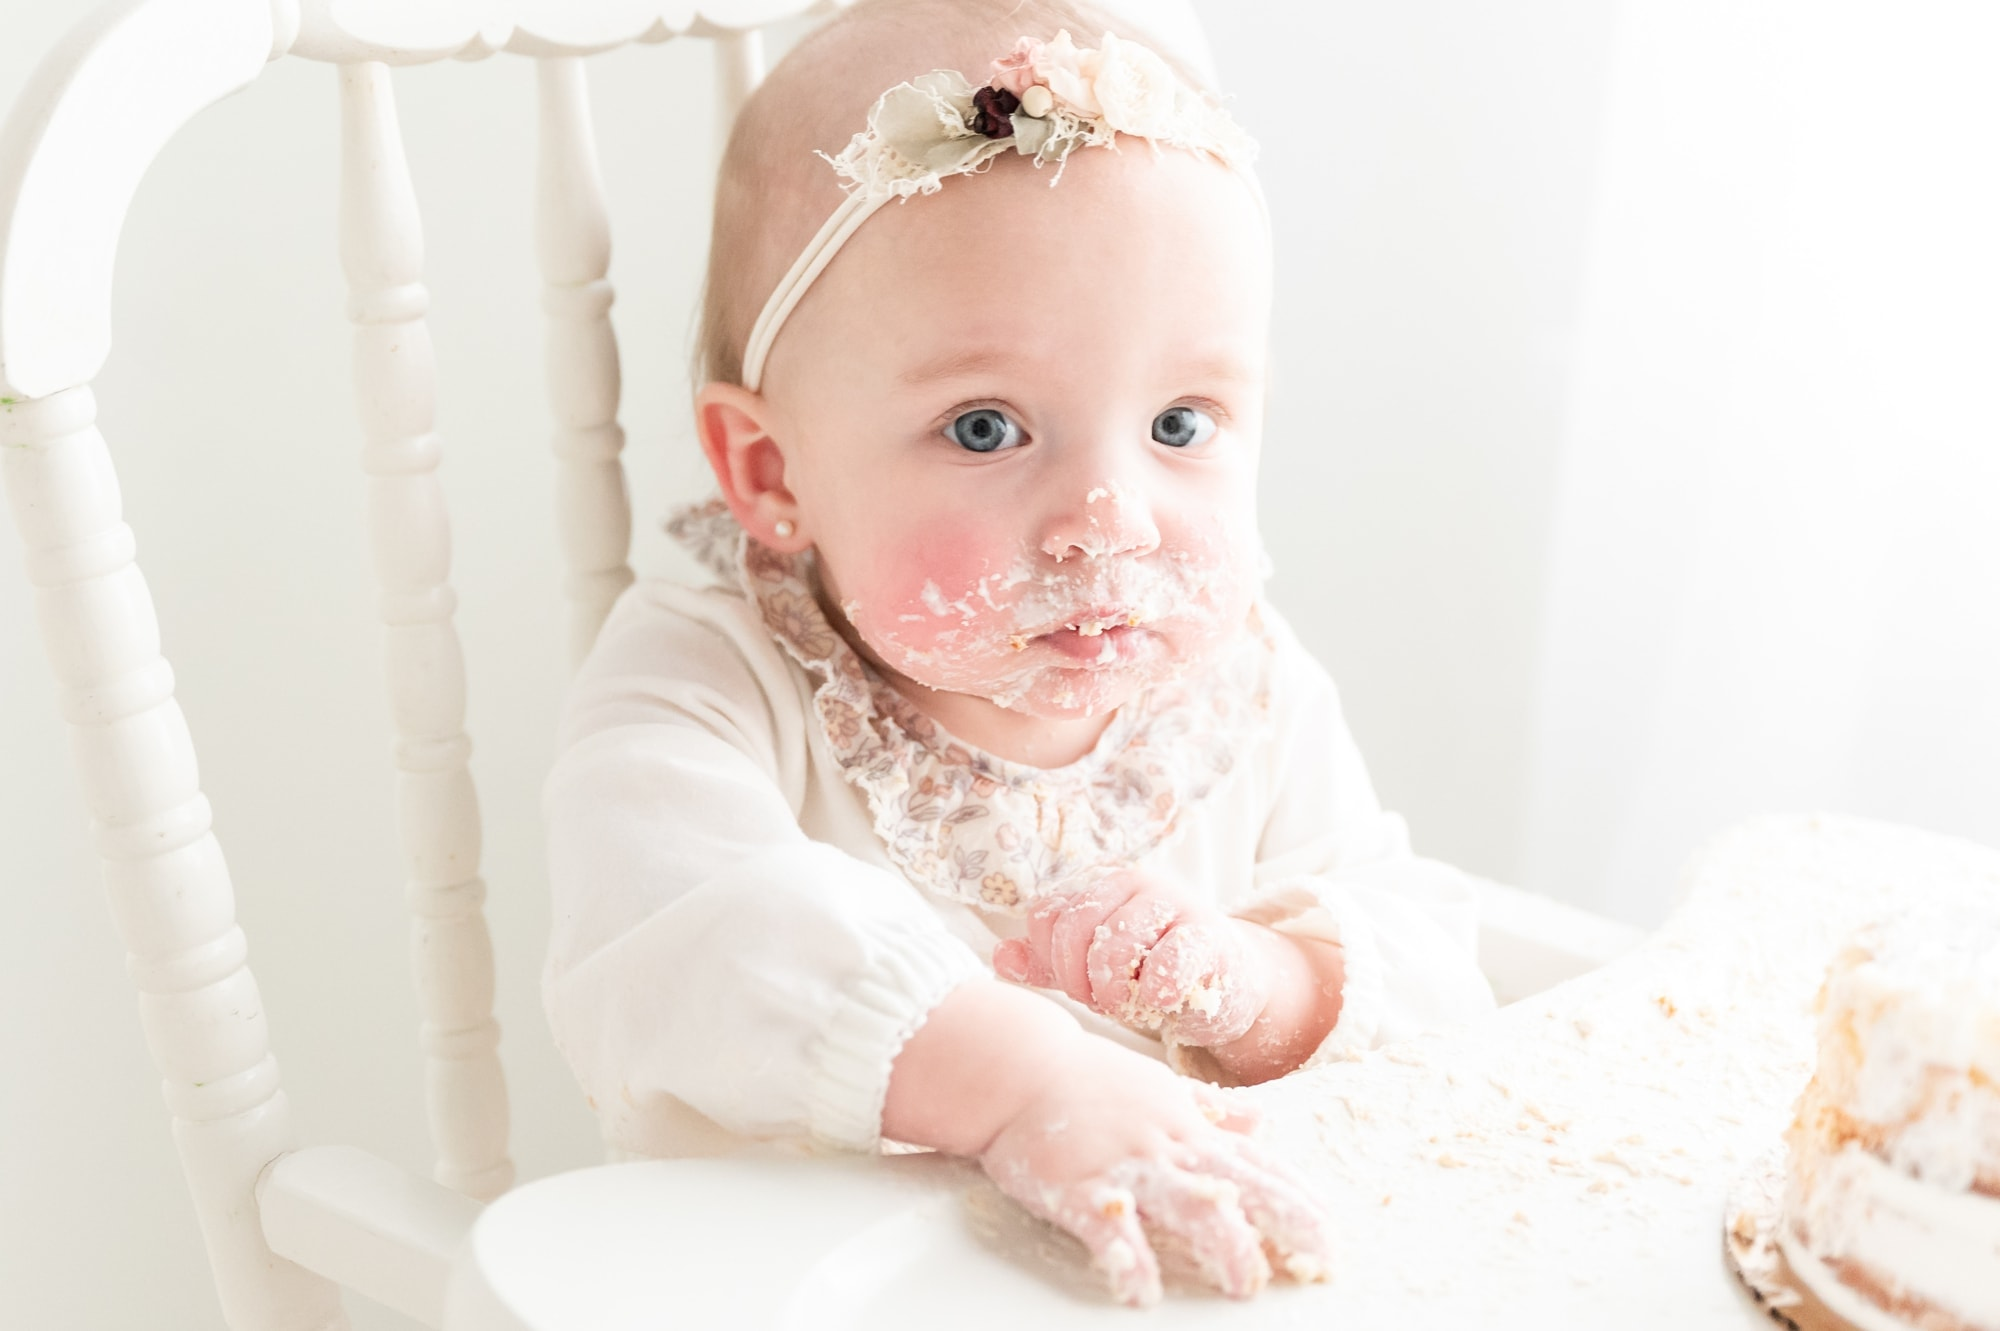 Closeup of baby girl looking at camera during cake smash. Photo by Aimee Hamilton Photography.